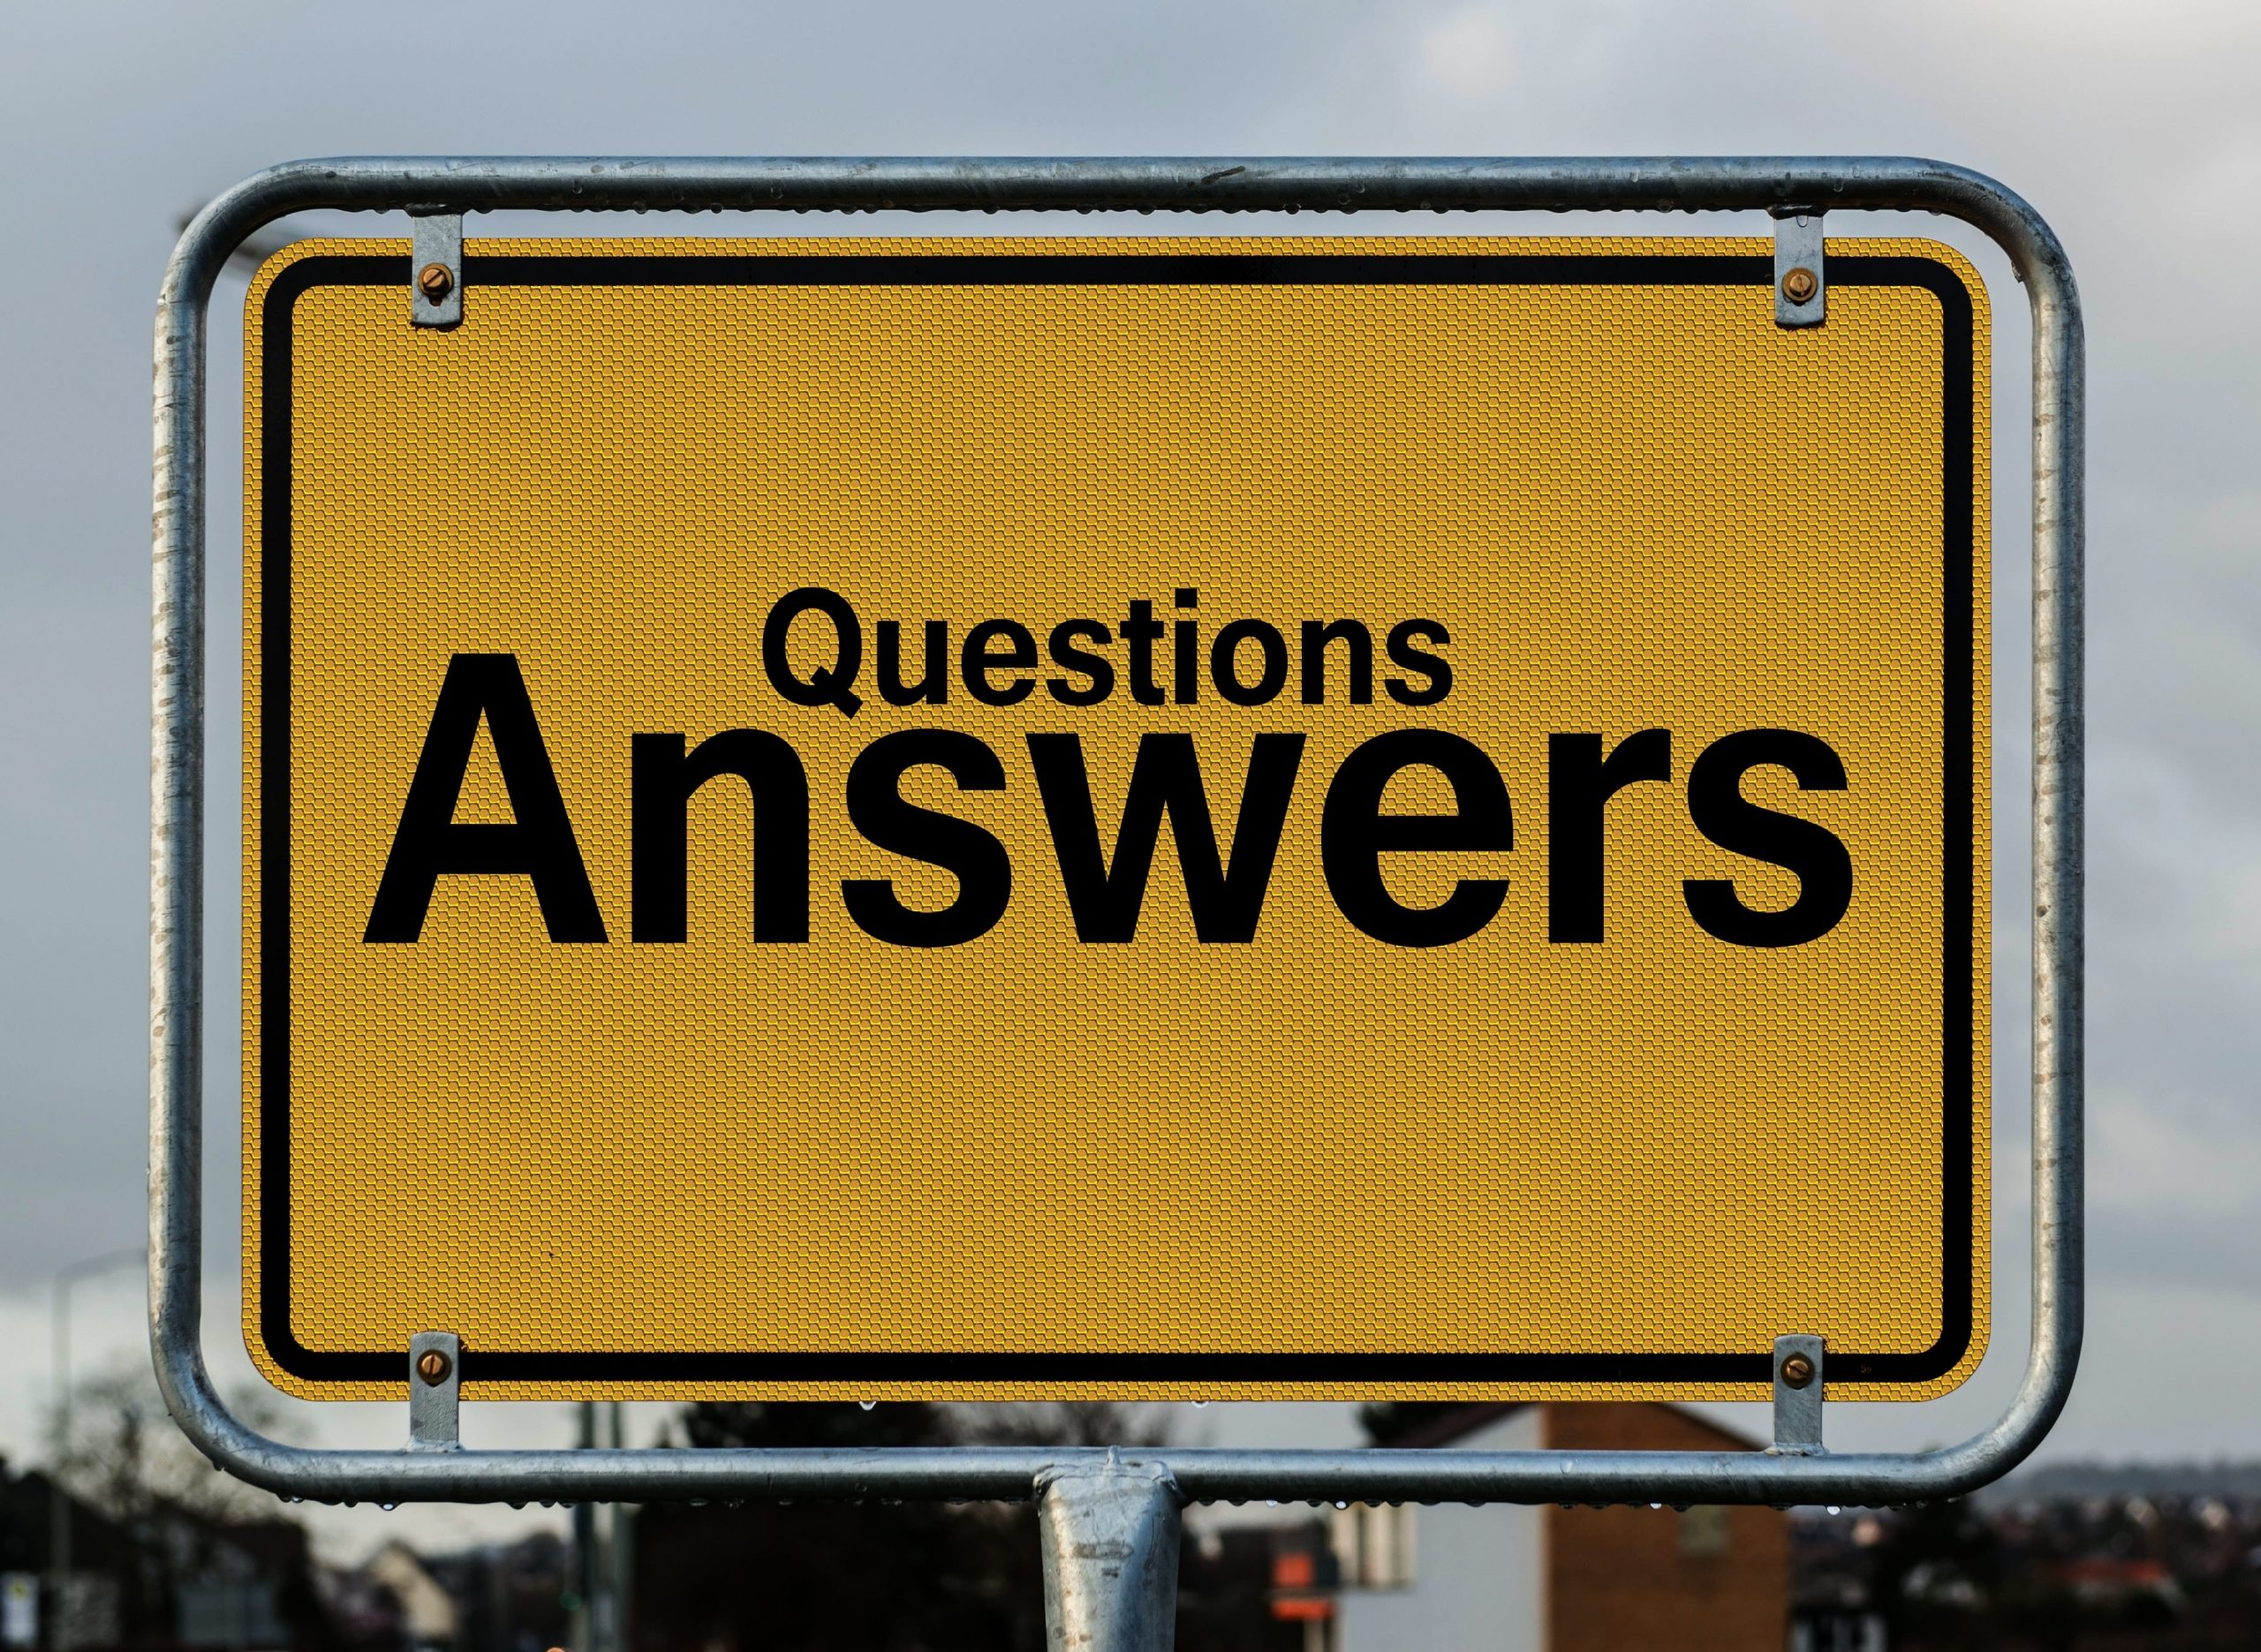 Questions answers sign